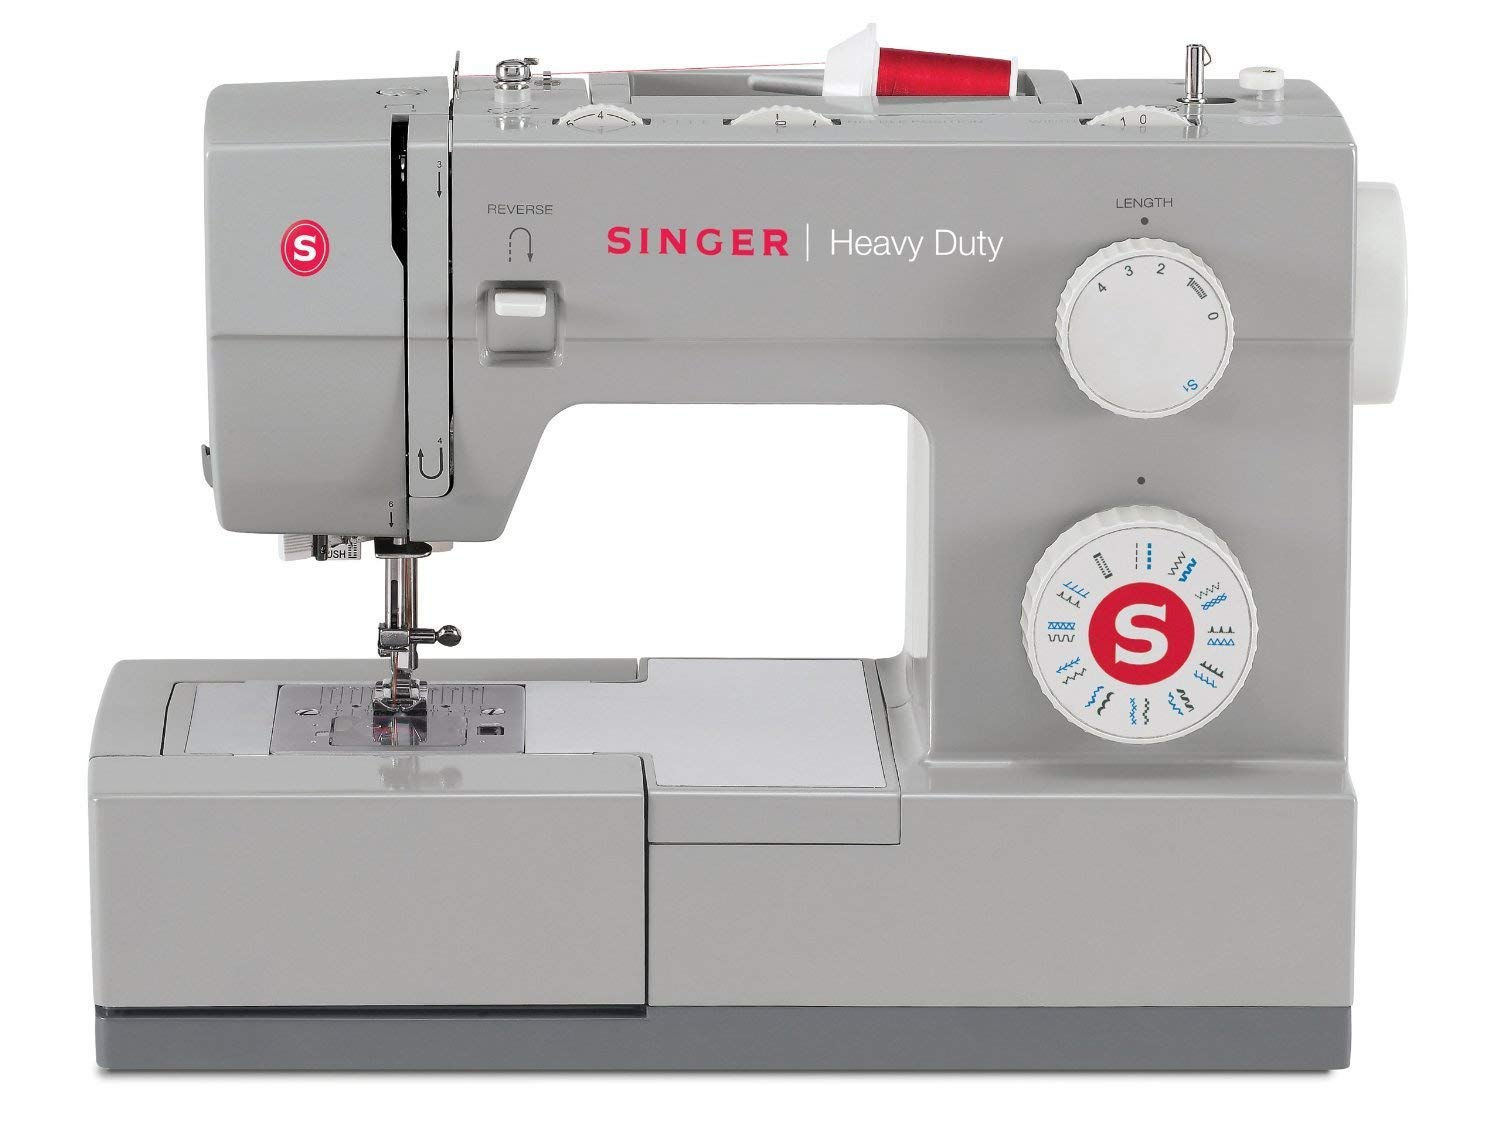 Singer 4423 23 Built-in Stitches-12 Decorative Stitches, 60% Stronger Motor & Automatic Needle Threader, Perfect Types o Heavy Duty Sewing Machine, White (Renewed)